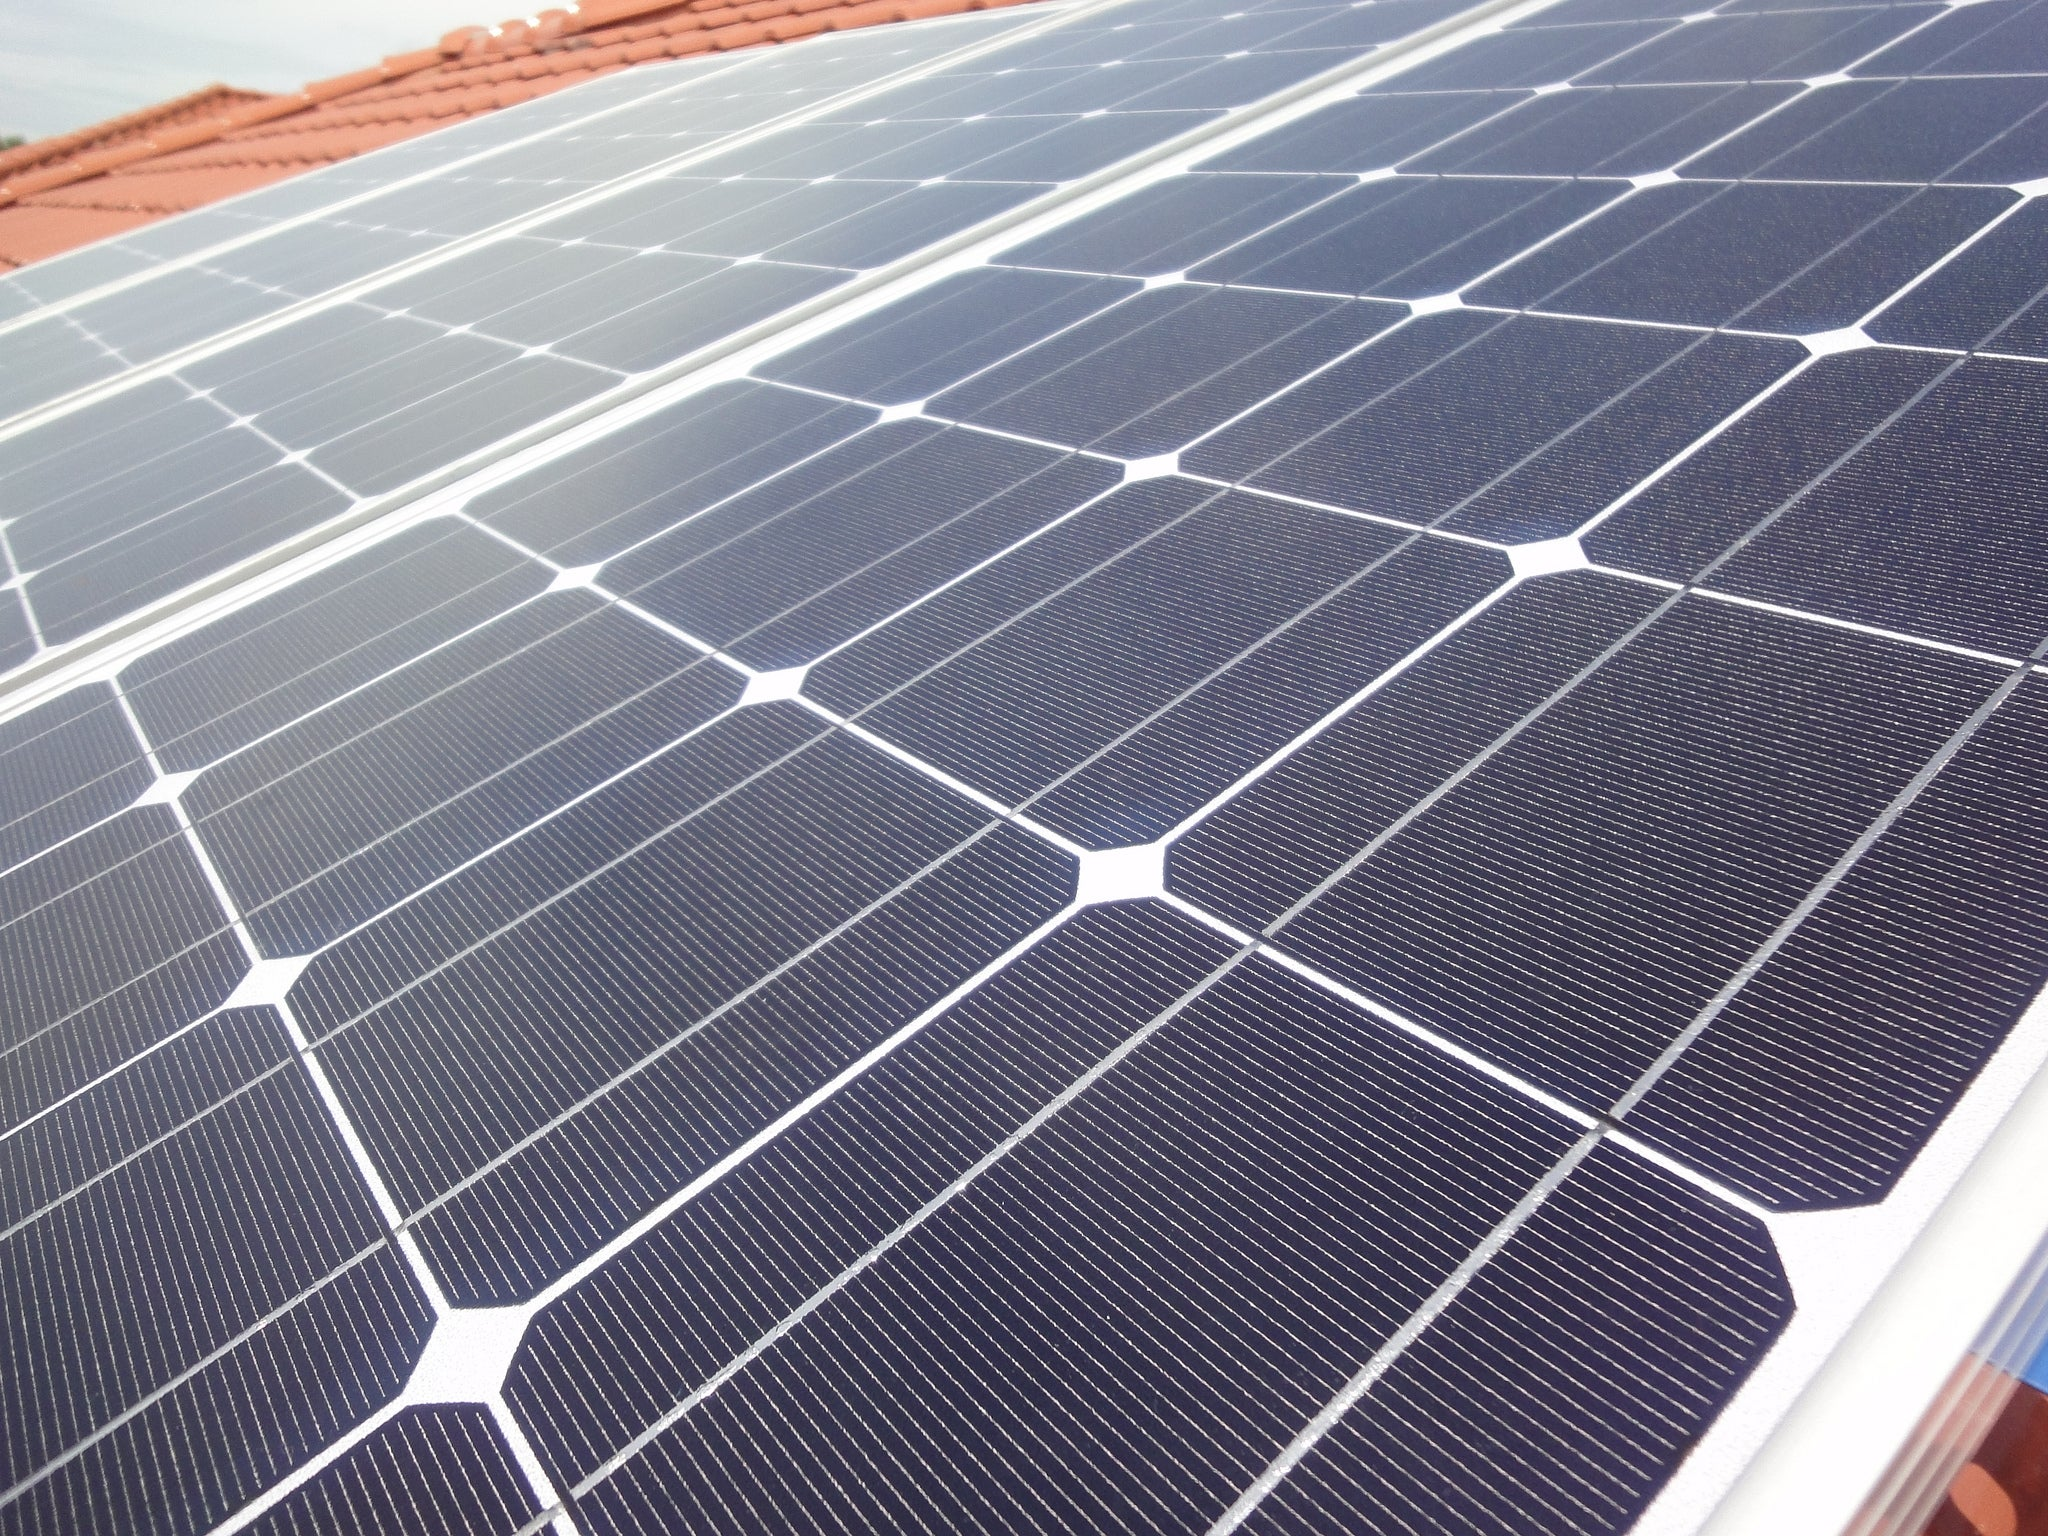 why china is dominating the solar industry scientific americanwhy china is dominating the solar industry